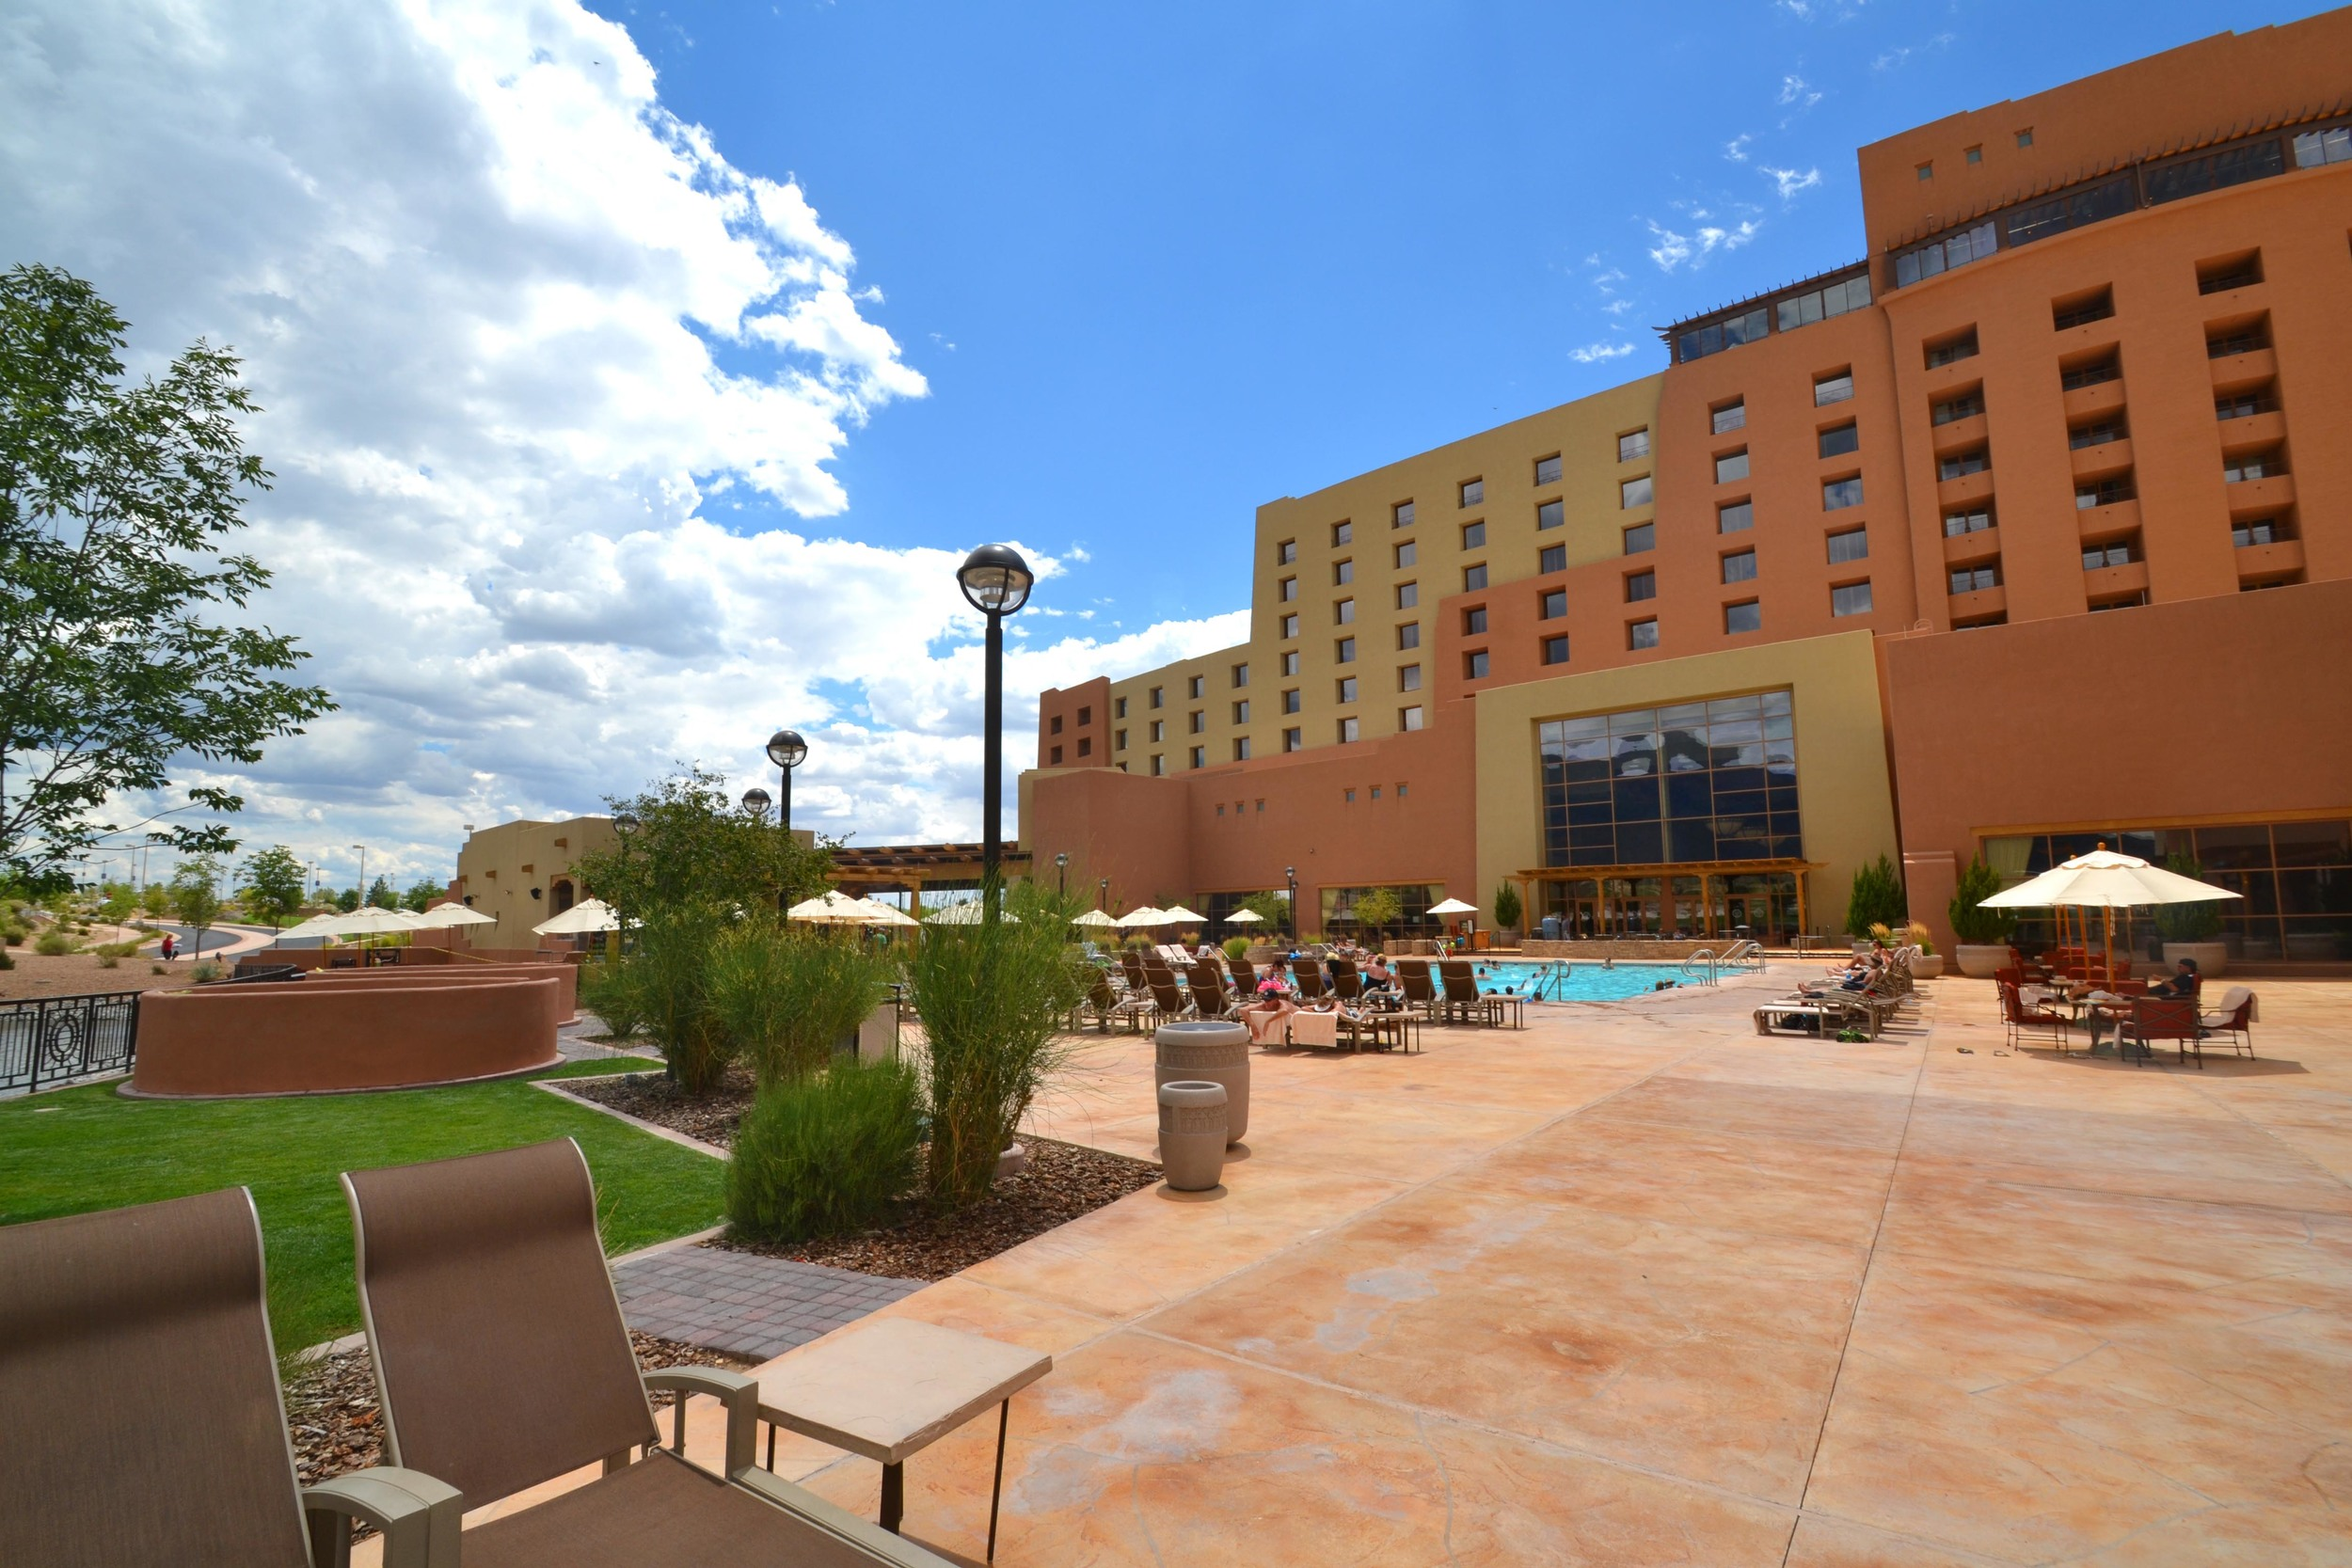 Pool and patio area at Sandia Resort and Casino